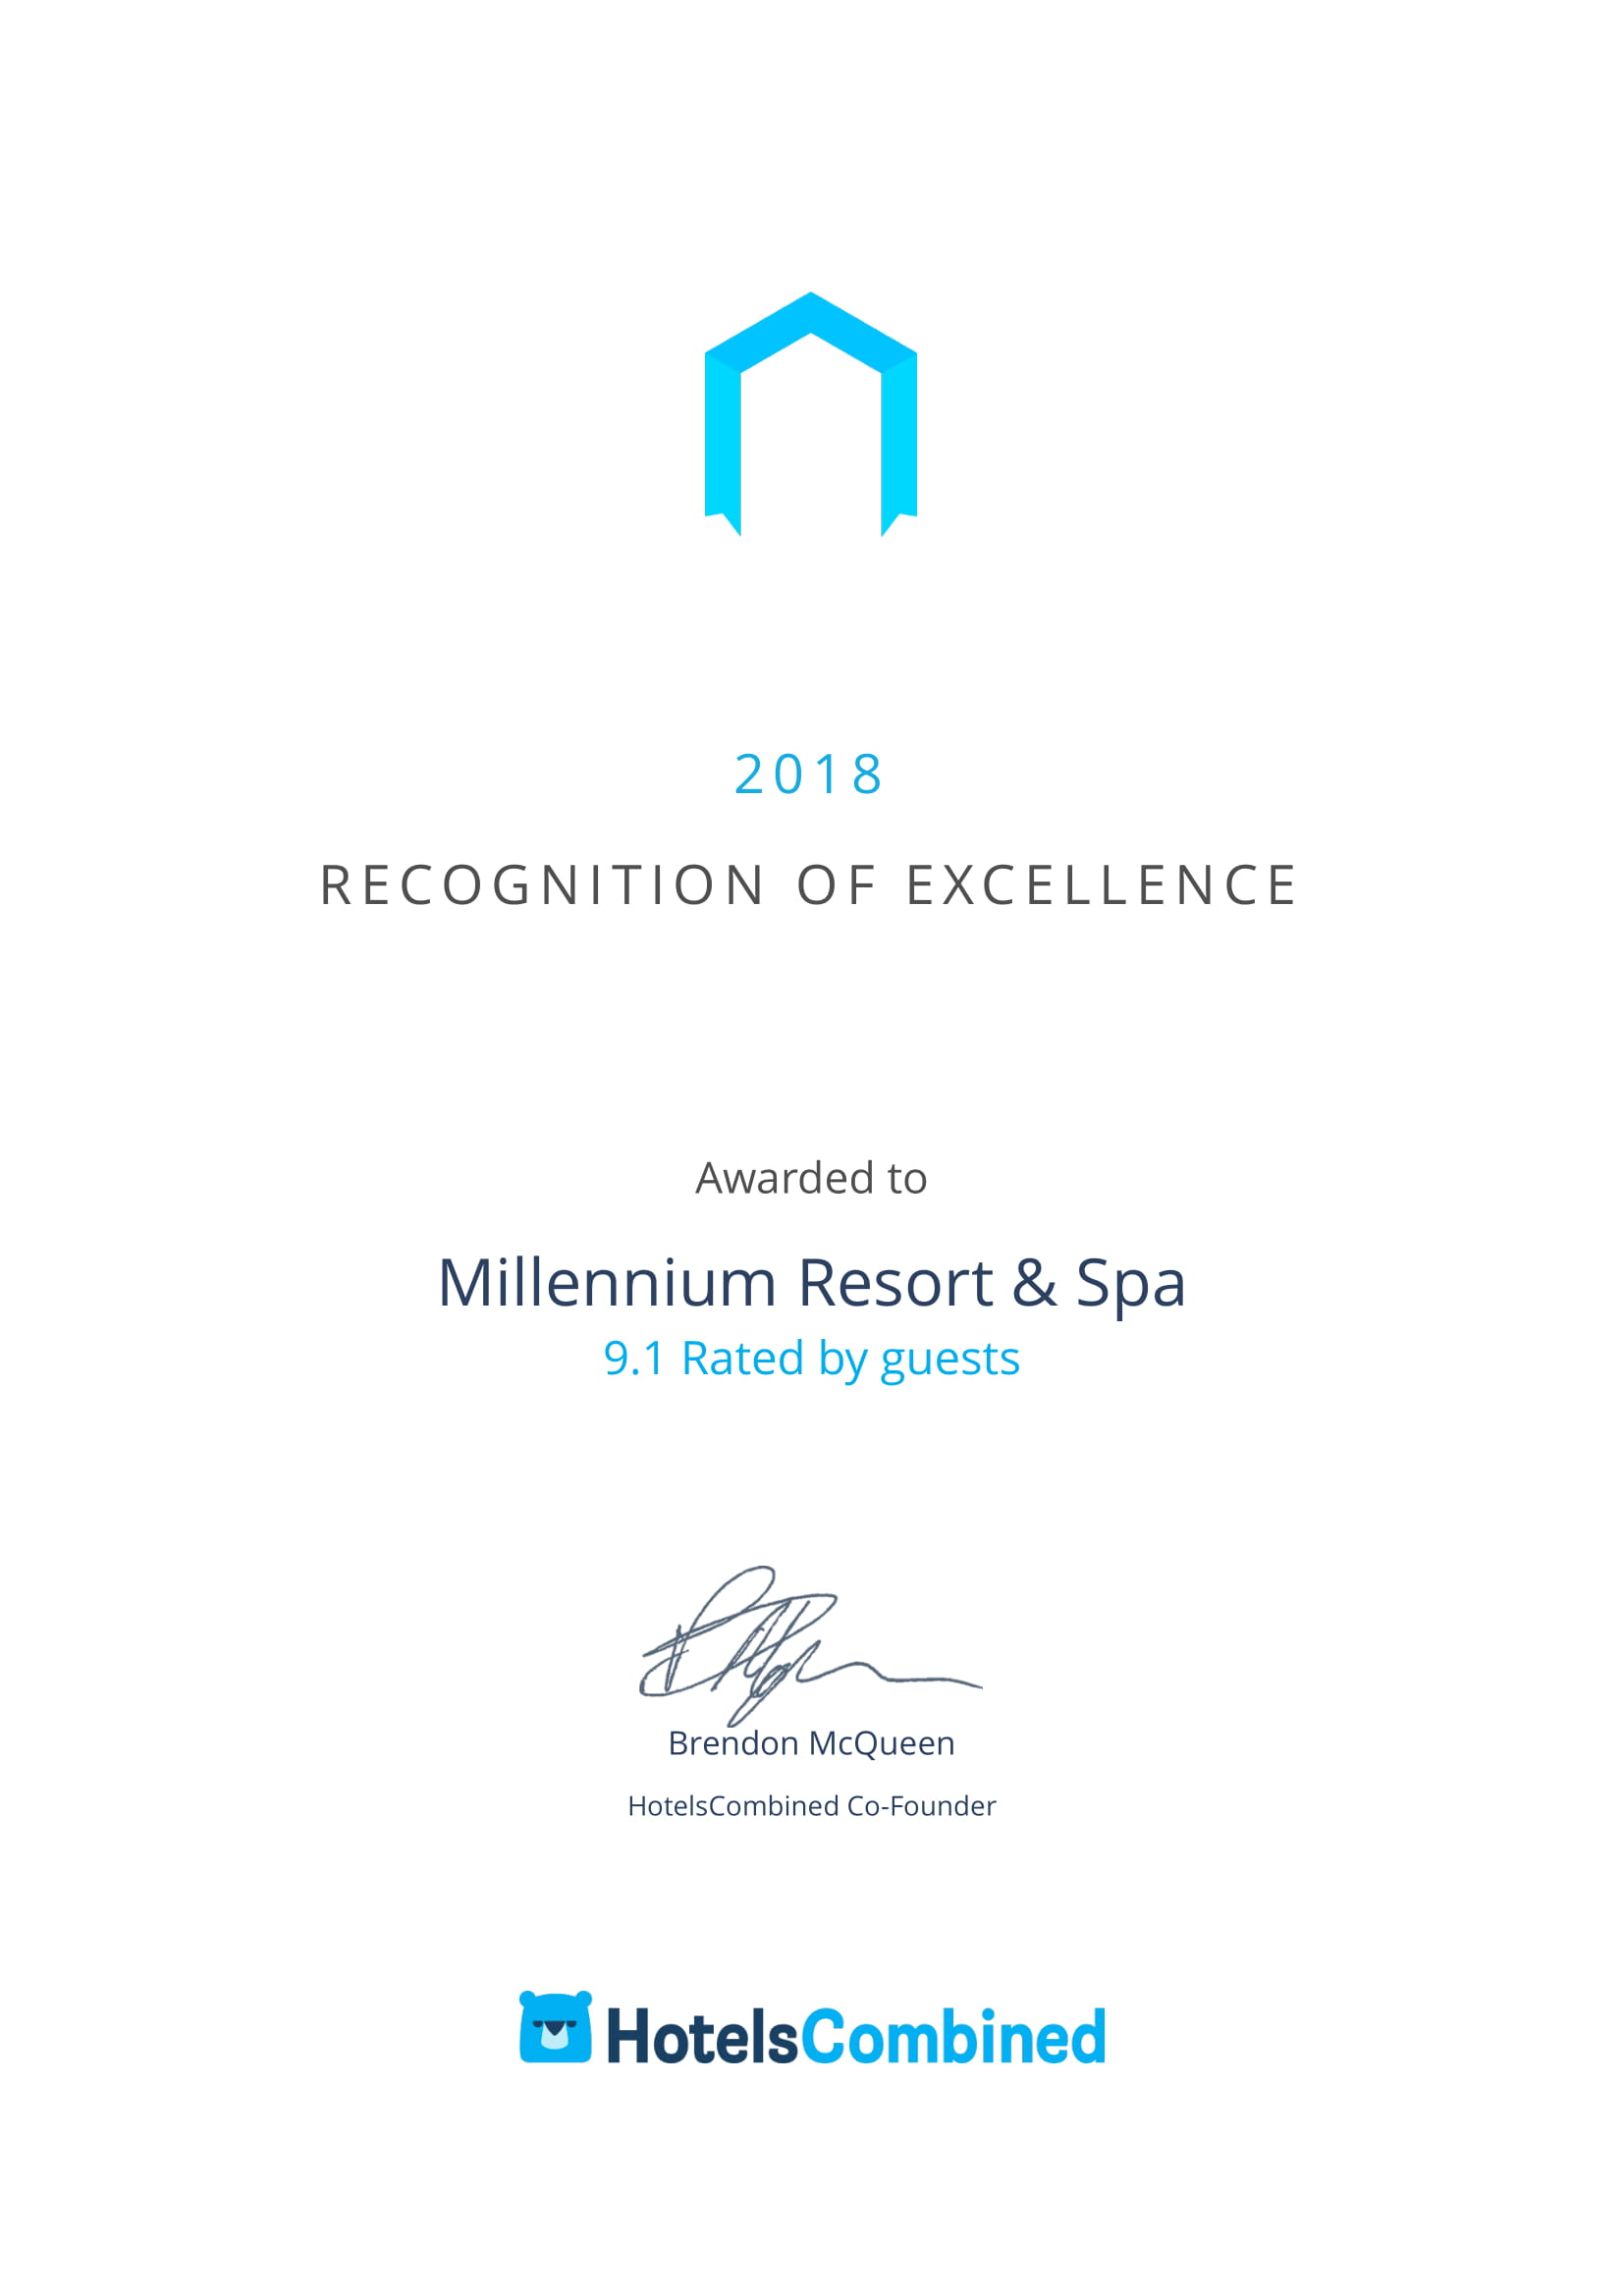 Millennium Resort & Spa Best Hotels Award